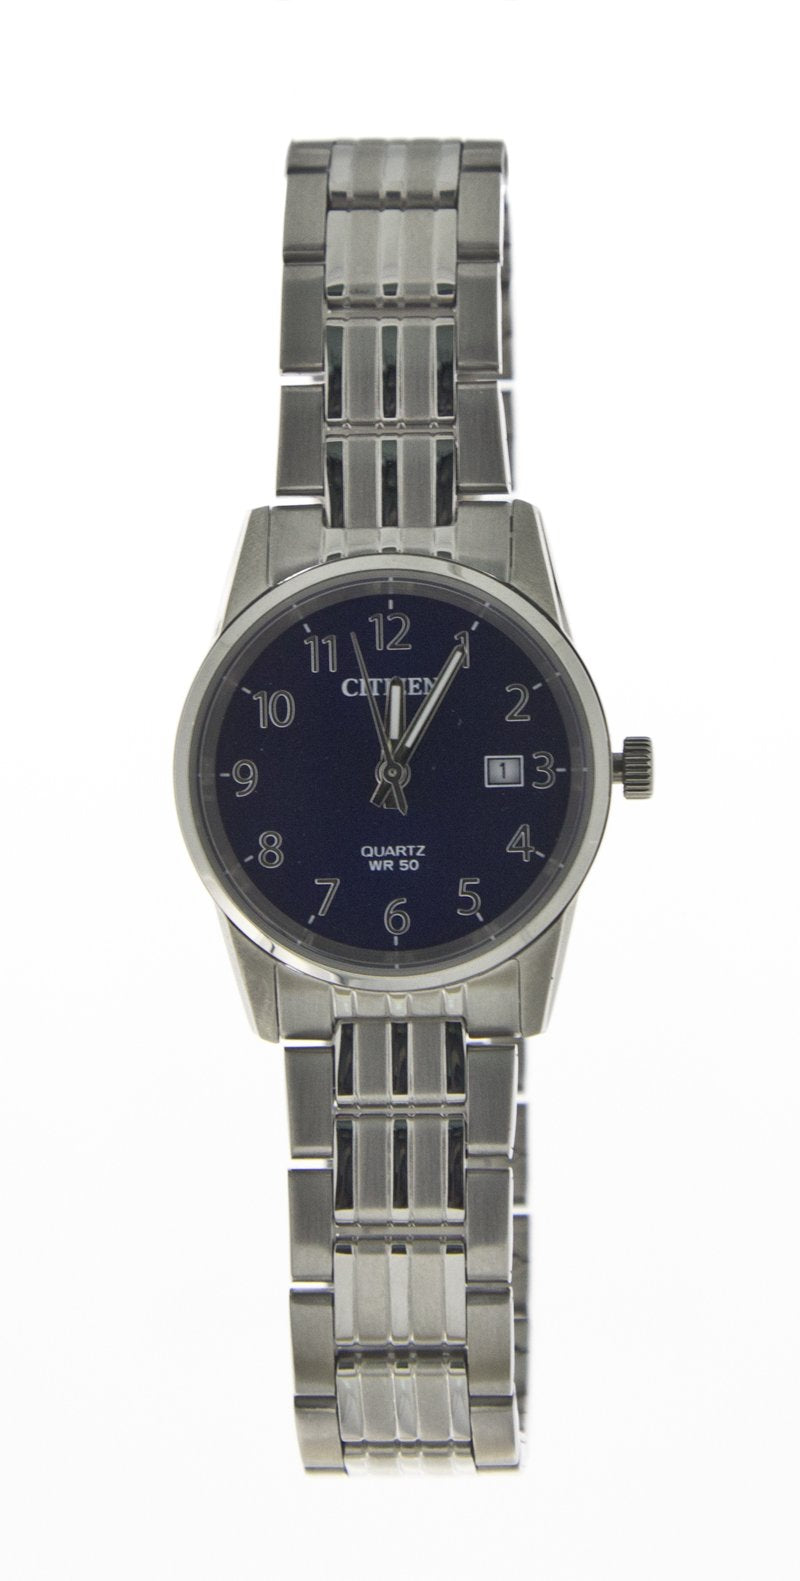 Citizen Quartz Watch Features Blue Face and Date Number